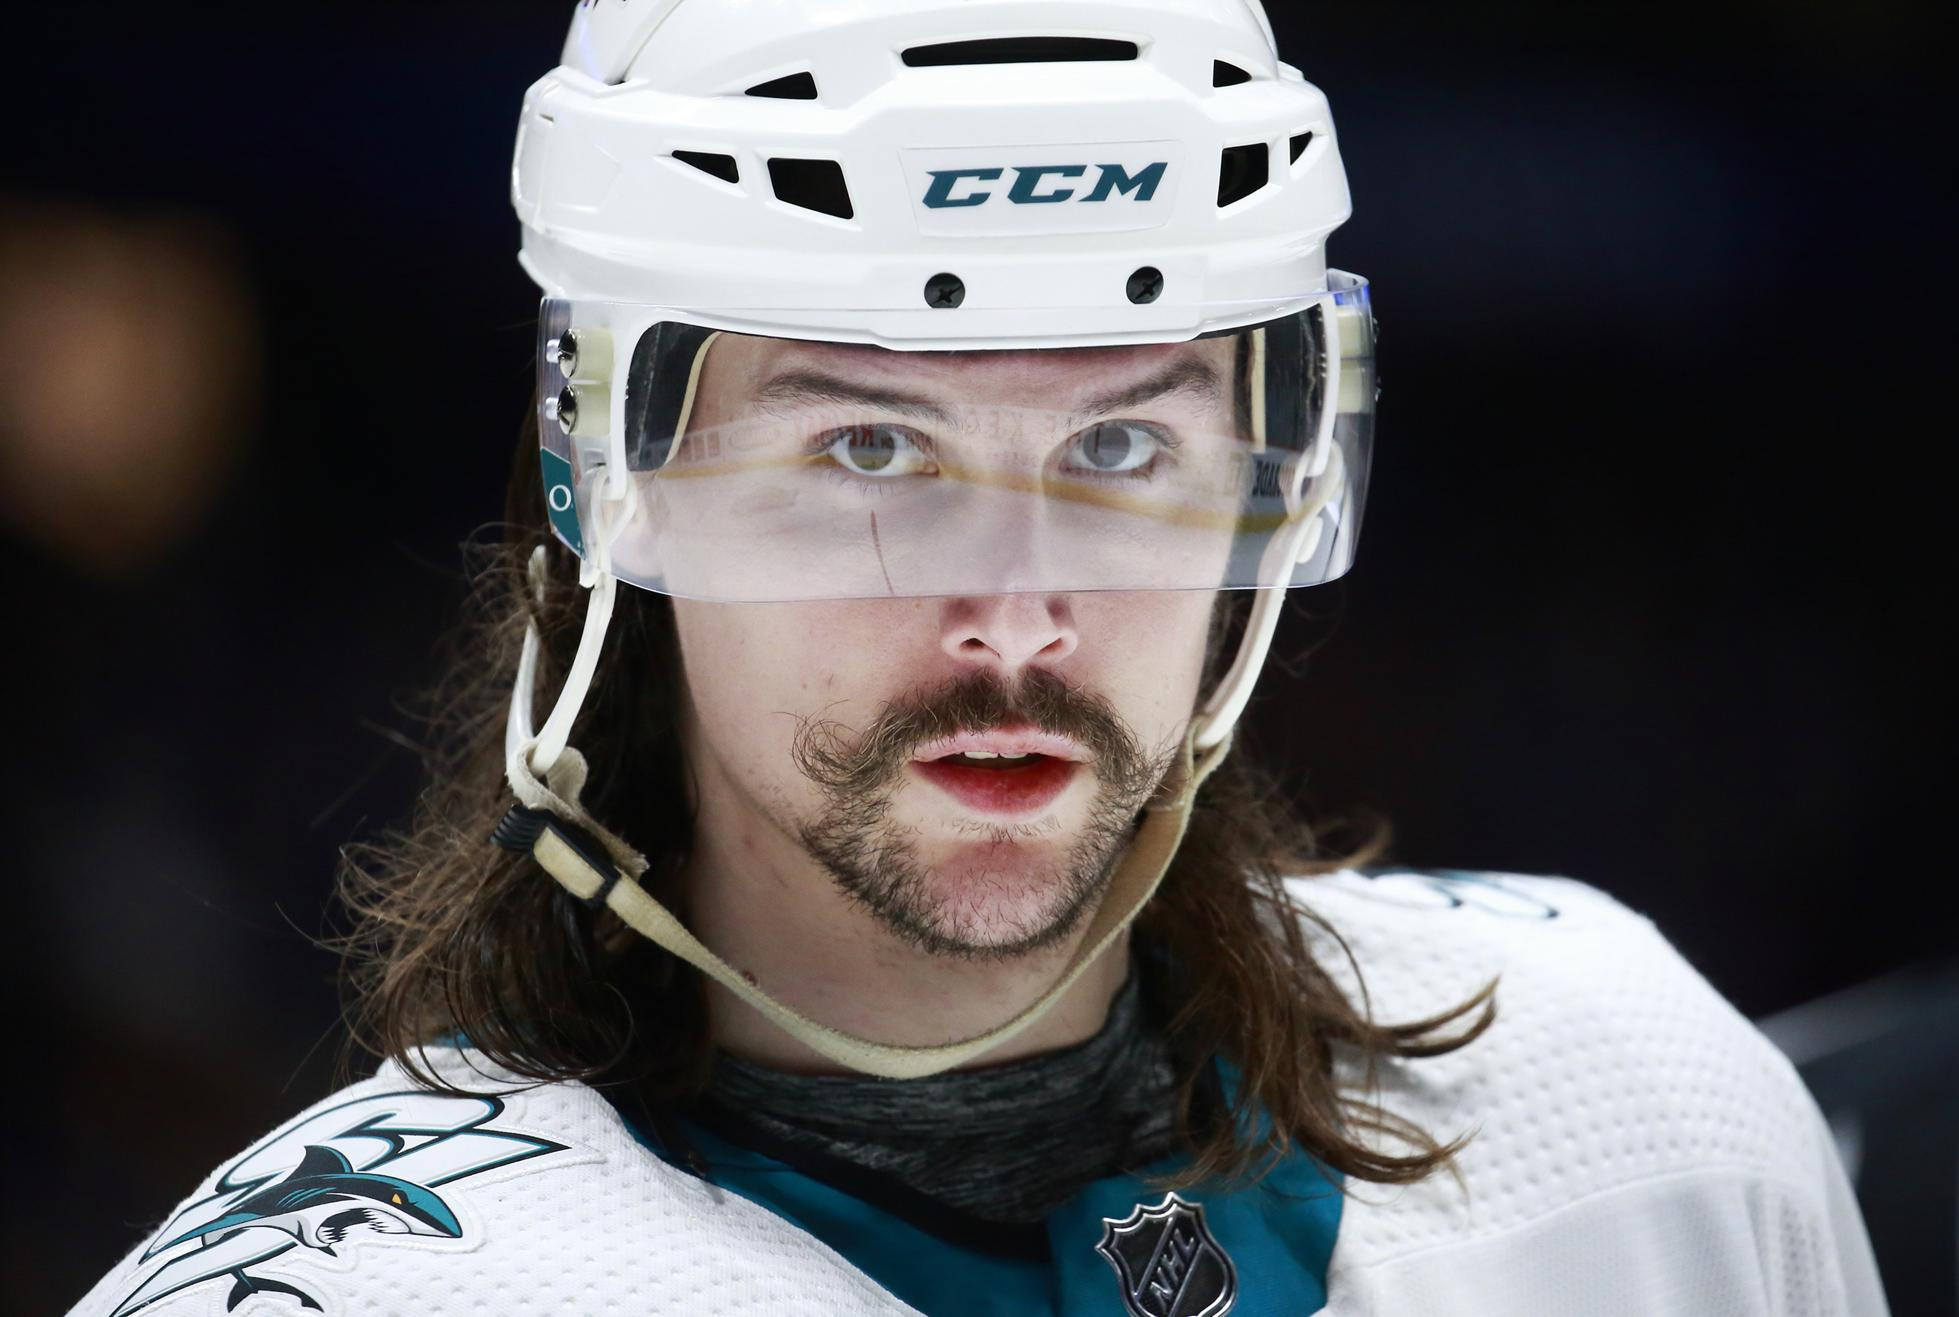 Erik Karlsson #65 of the San Jose Sharks skates up ice during their NHL game against the Vancouver Canucks at Rogers Arena January 18, 2020 in Vancouver, British Columbia, Canada.